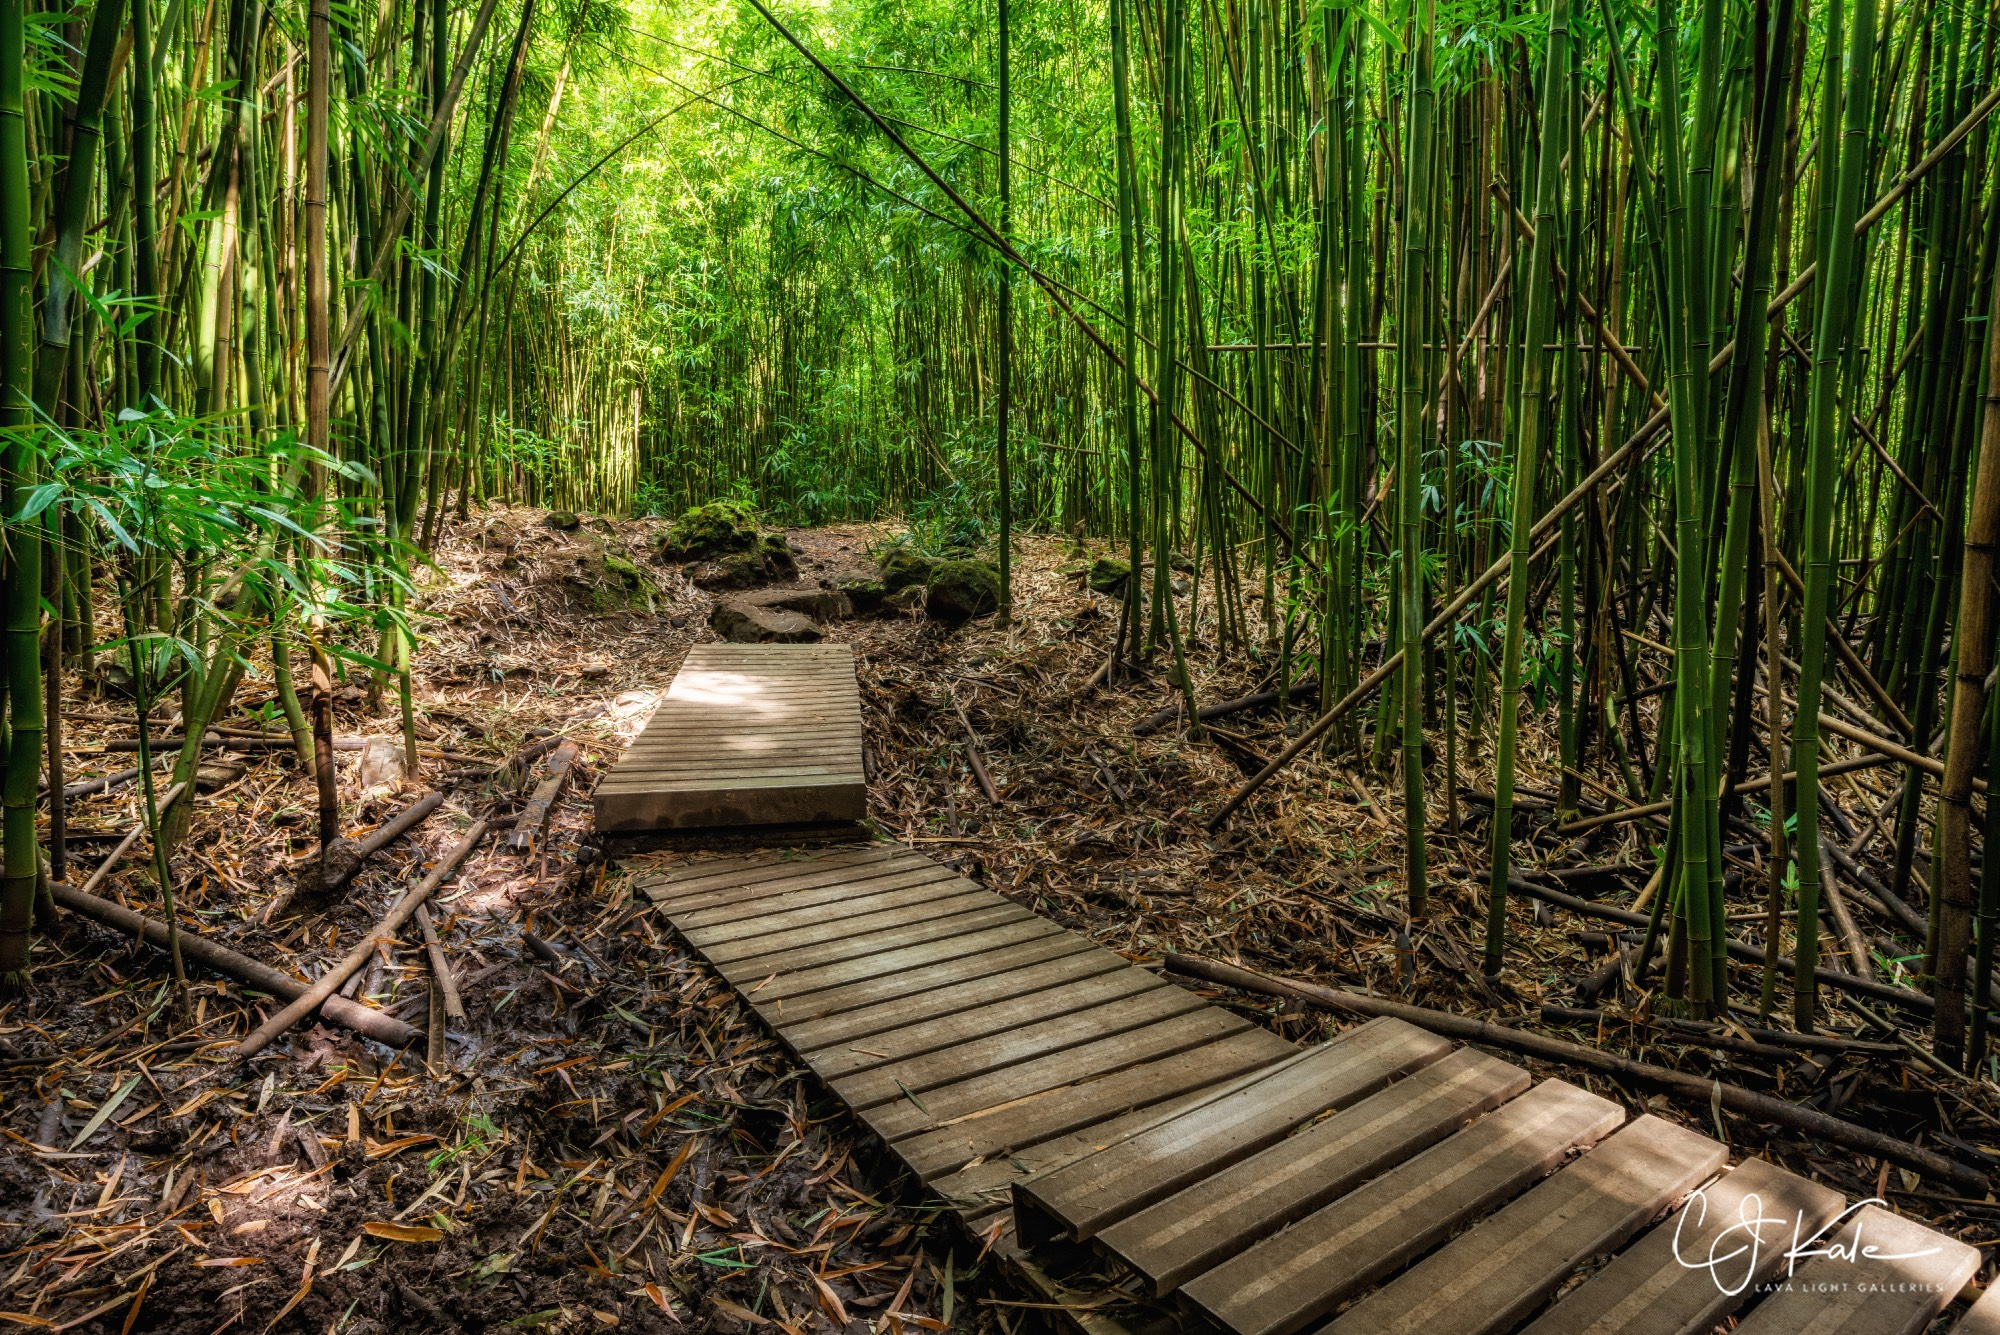 In the bamboo forest.